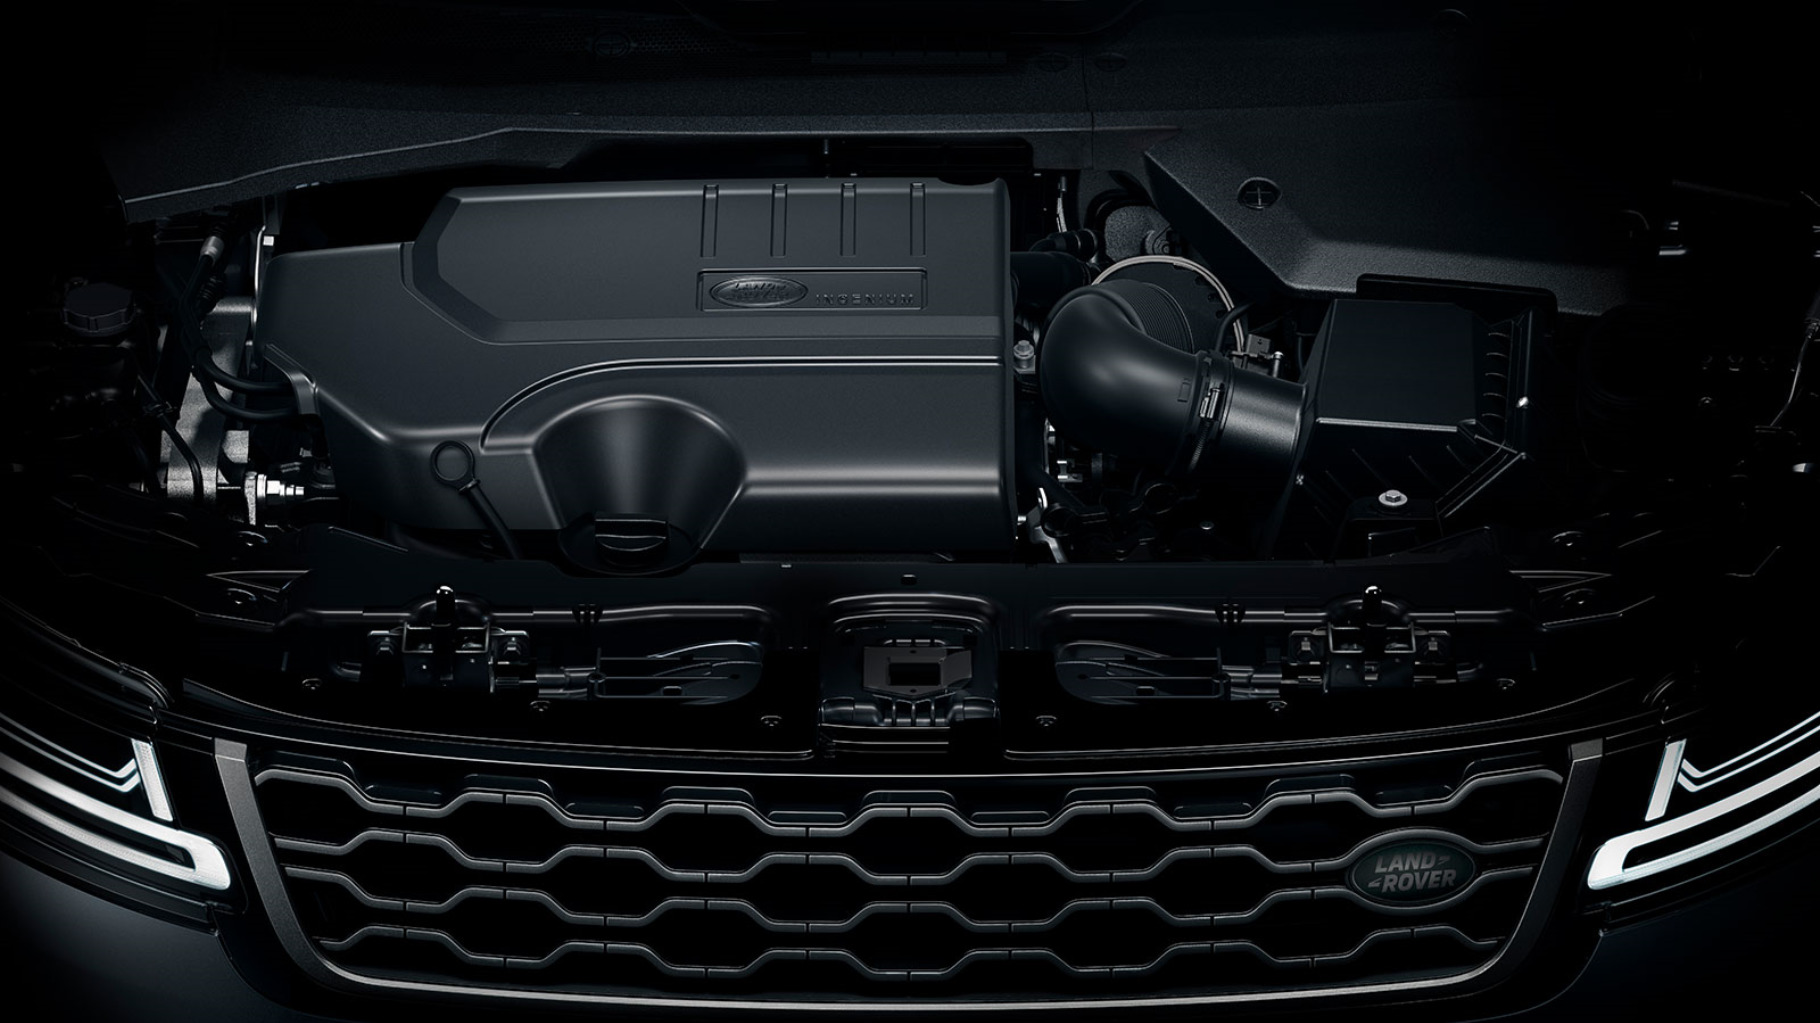 2020 Range Rover Evoque Engine.